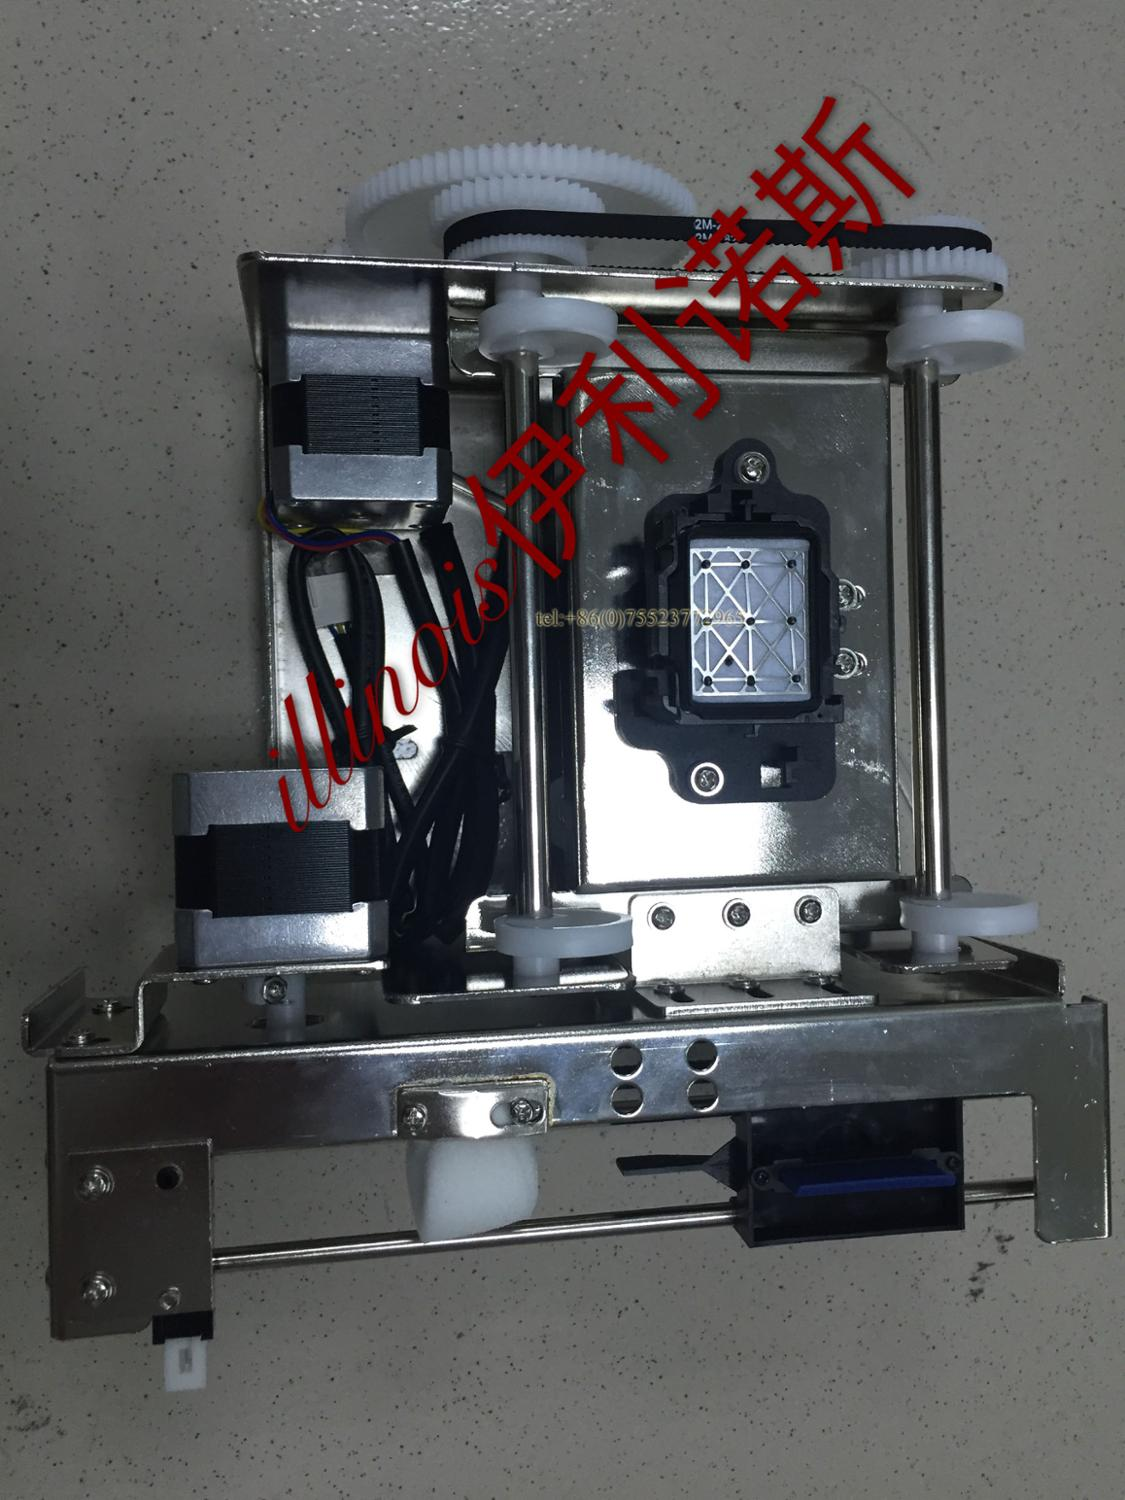 DX5 Print Head Assembly Printer Ink Pump Assembly,Single Printhead,Black,FORTUNR-LIT/ALLWIN/XENONS/GALAXY/ZHONGYE printer parts hot sale single dx5 ink pump assembly for flora versacamm leopard large format printer machine